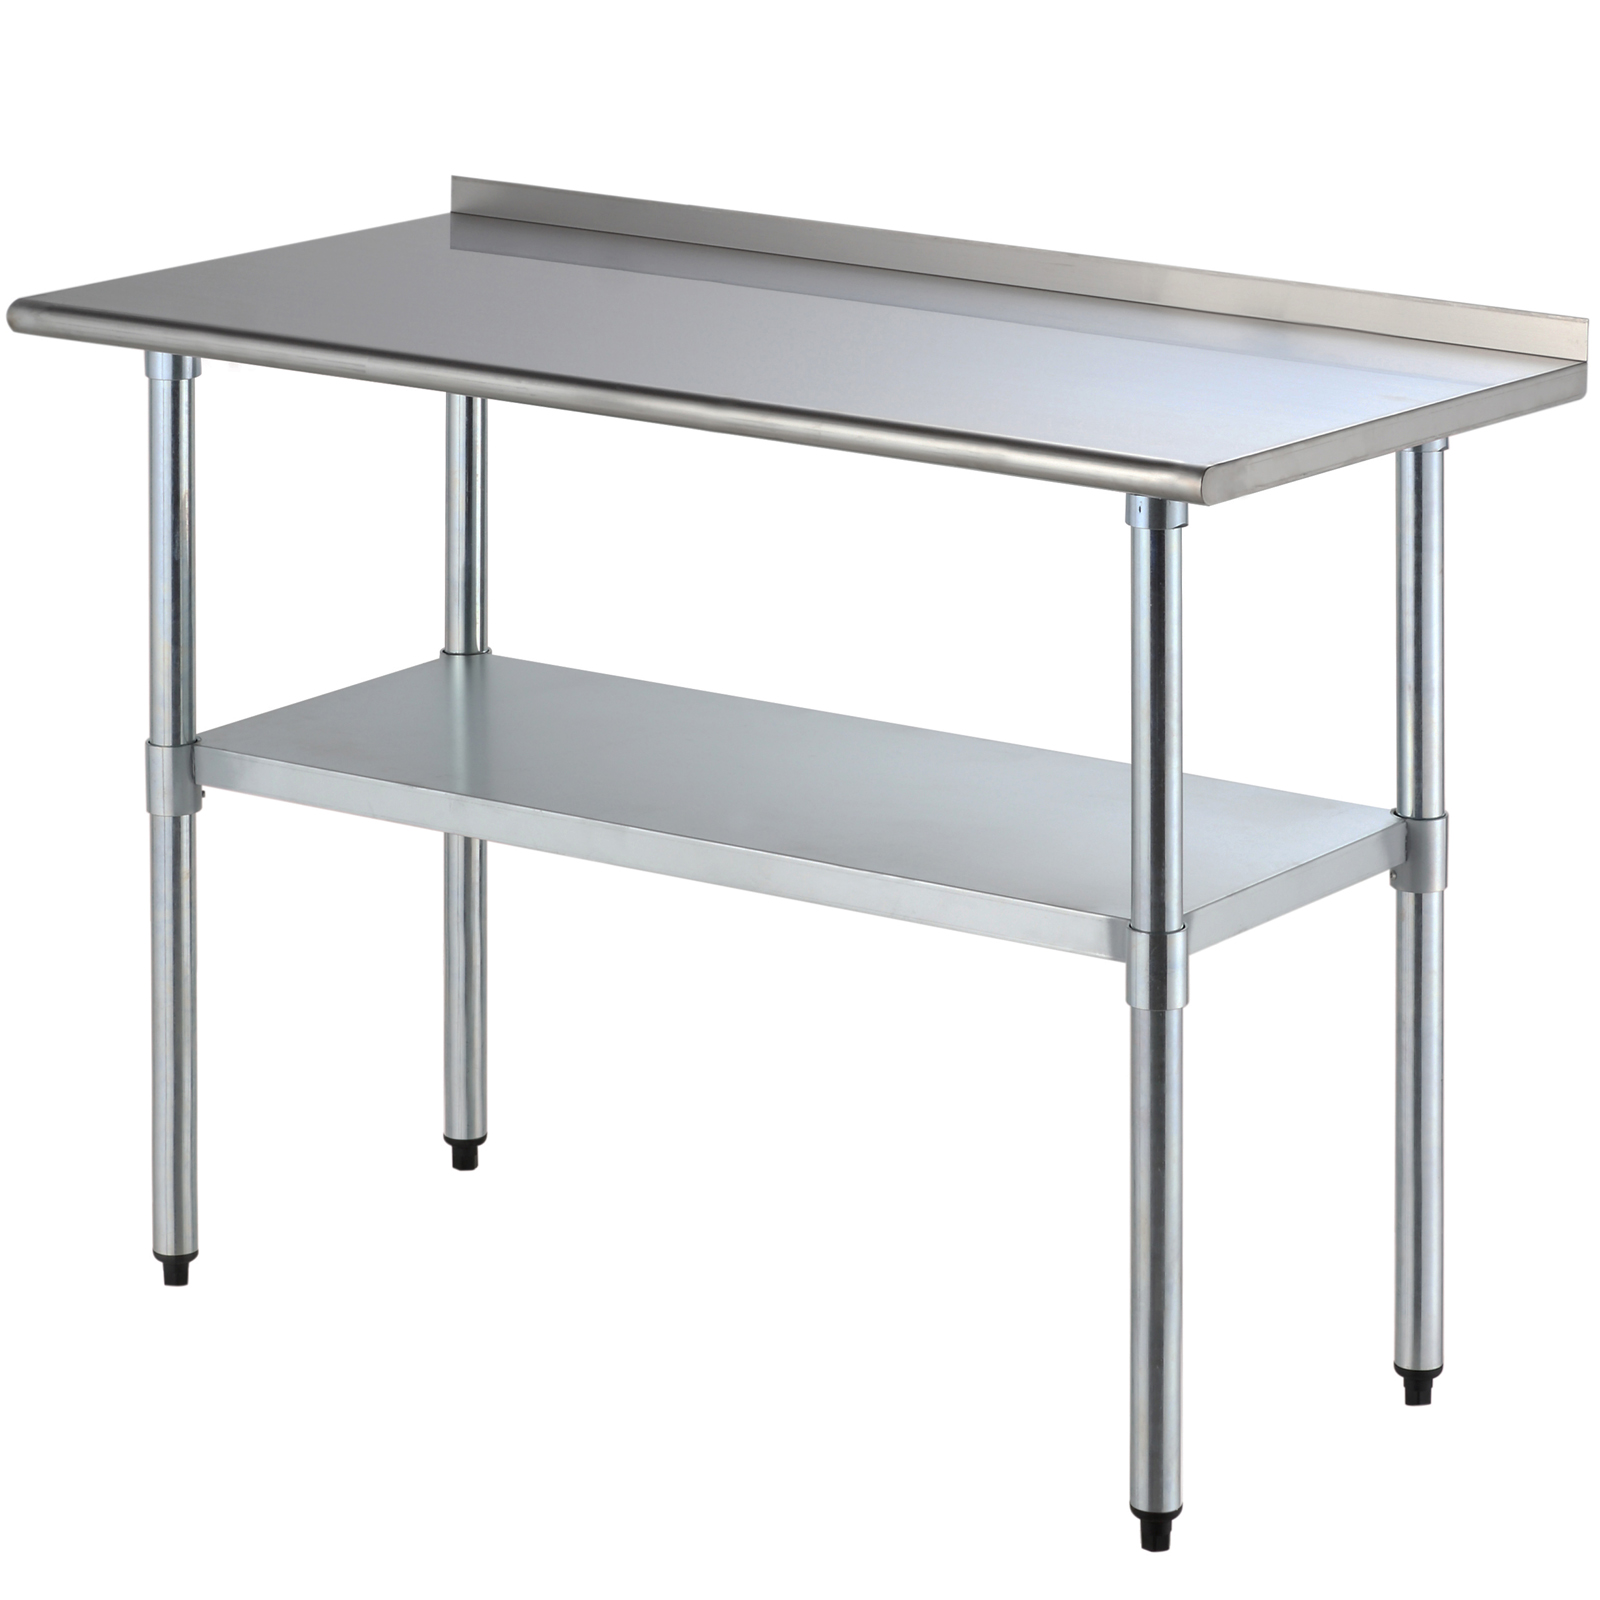 2ft×4ft Stainless Steel Kitchen Restaurant Work Prep Table. Table Runners And Placemats. Architect Table. Antique Nesting Tables. White Shiny Desk. Off White Coffee Table. Used Coffee Tables. Table Covers For Sale. Walmart L Desk